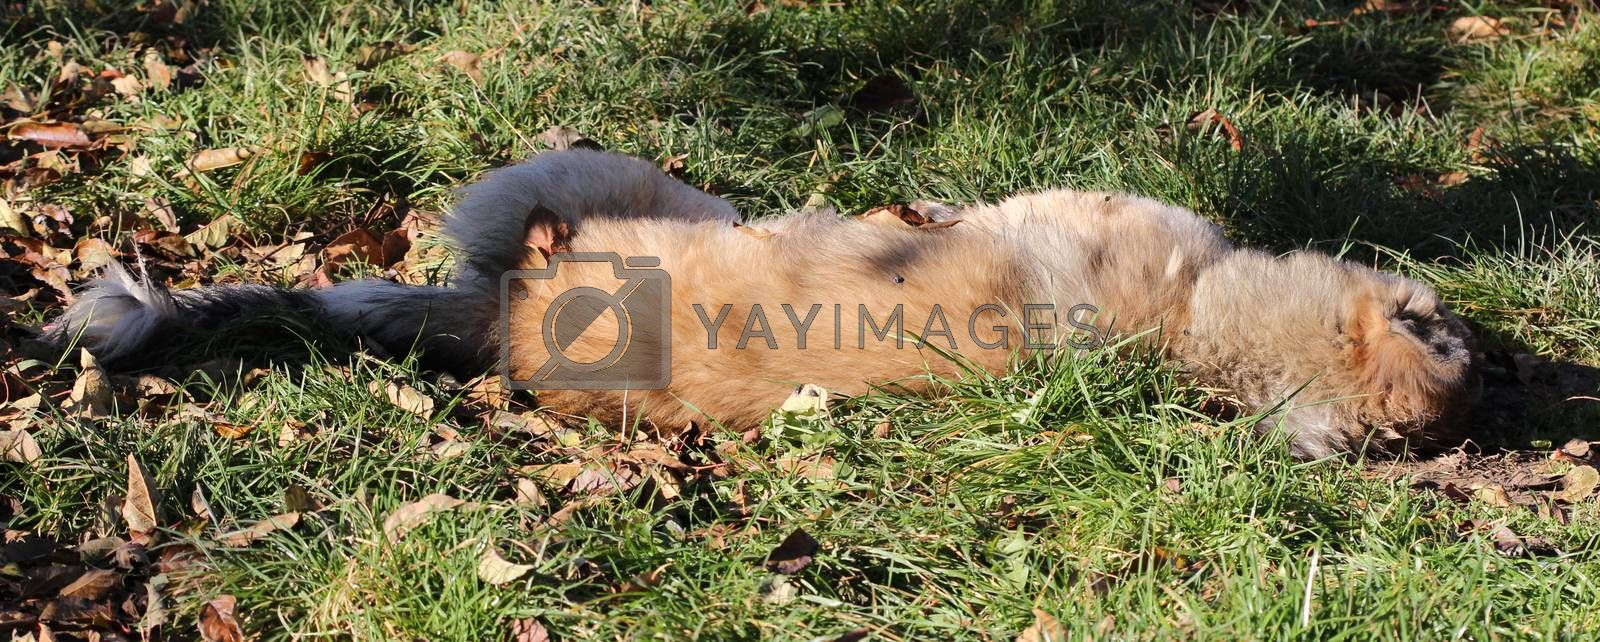 Royalty free image of Poisoned dog on a grass in november morning. Save animals concept. by nehru